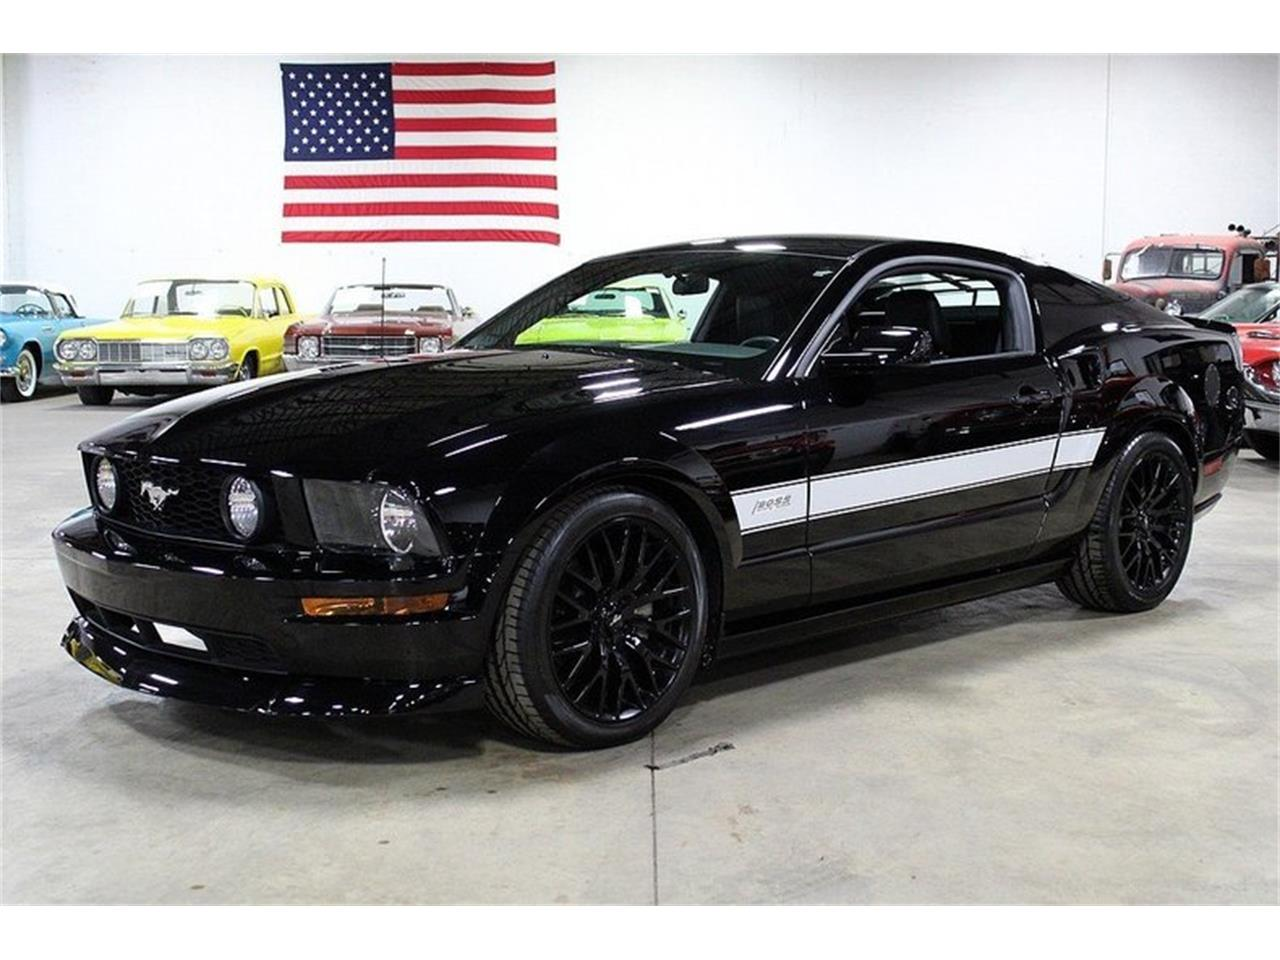 2007 ford mustang for sale classiccars com cc 1085820 1994 Ford Mustang large picture of \u002707 mustang n9to